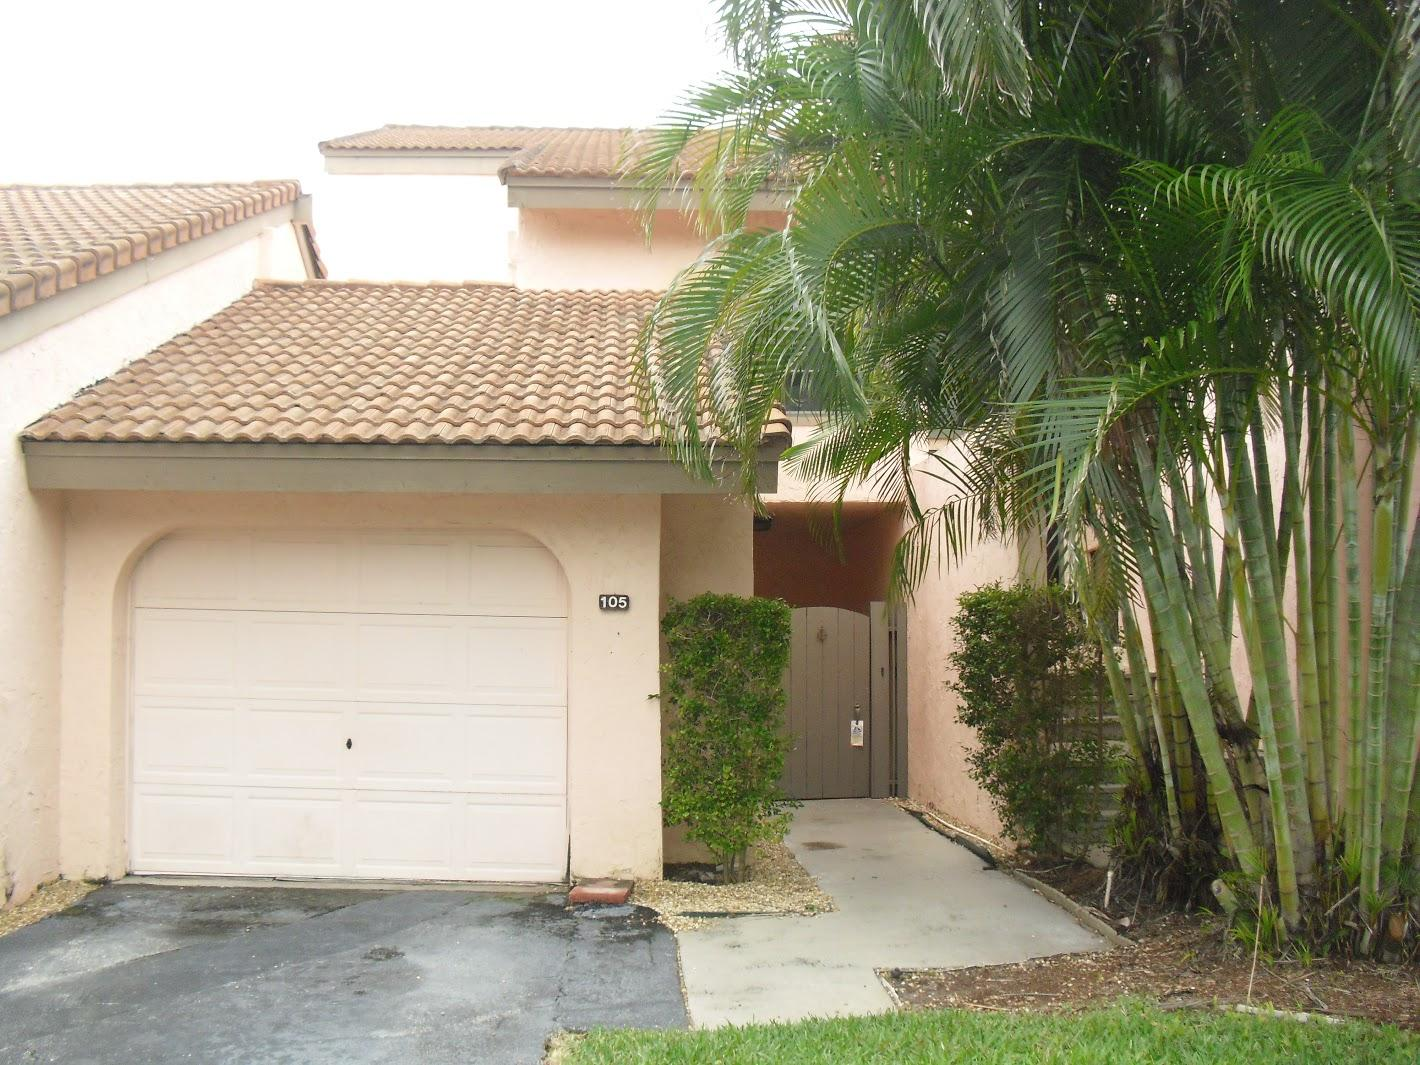 1800  Embassy Drive 105 For Sale 10681590, FL